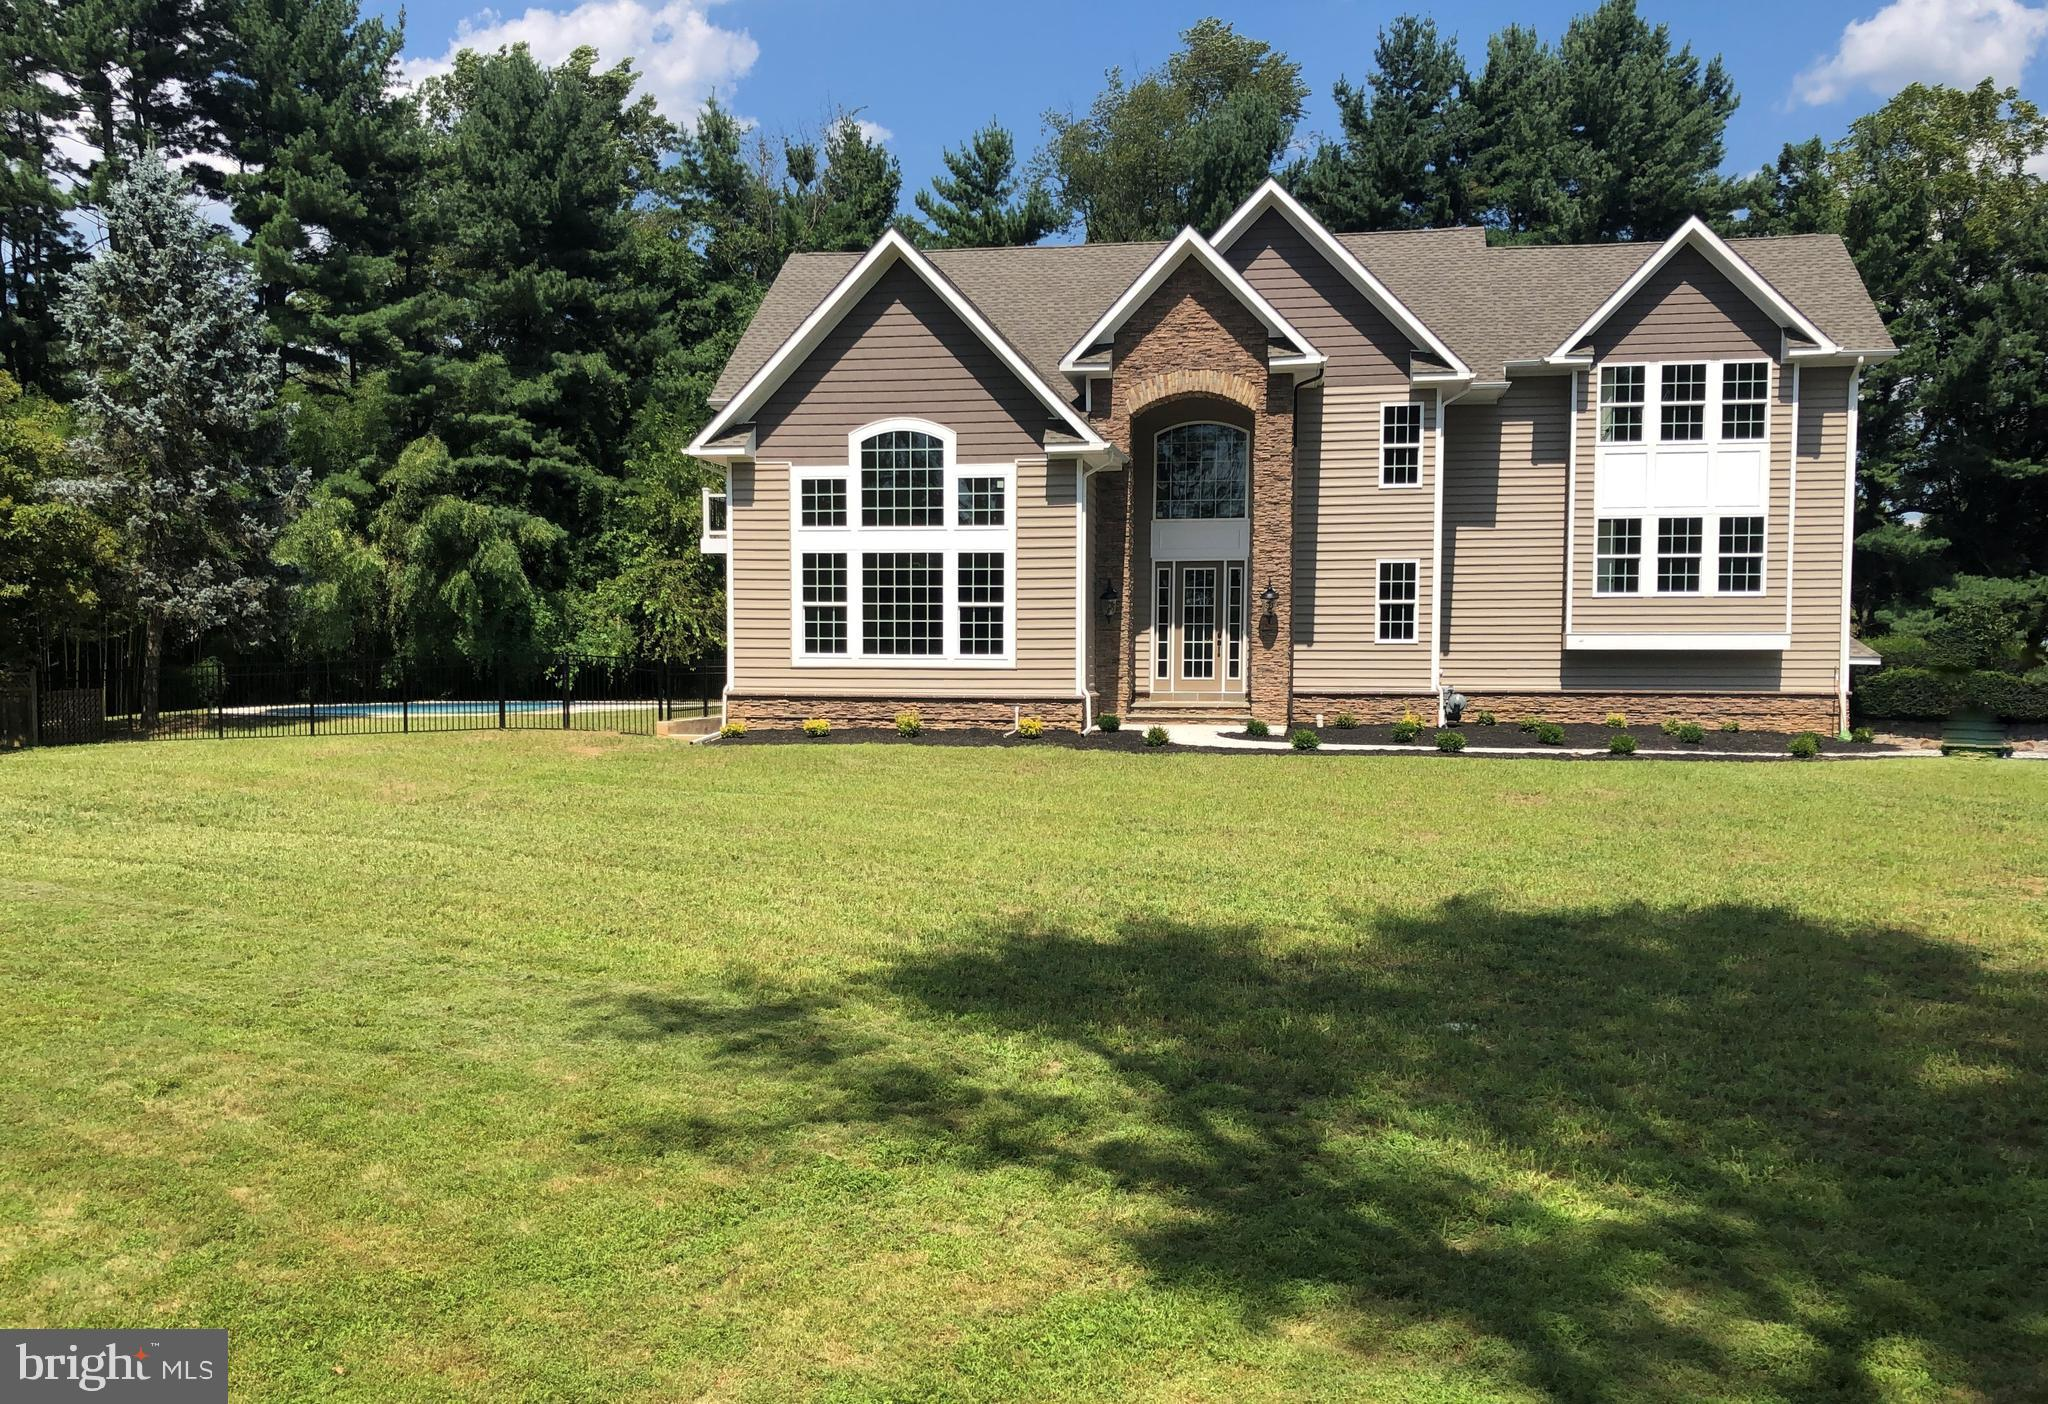 593 NEWELL DRIVE, HUNTINGDON VALLEY, PA 19006